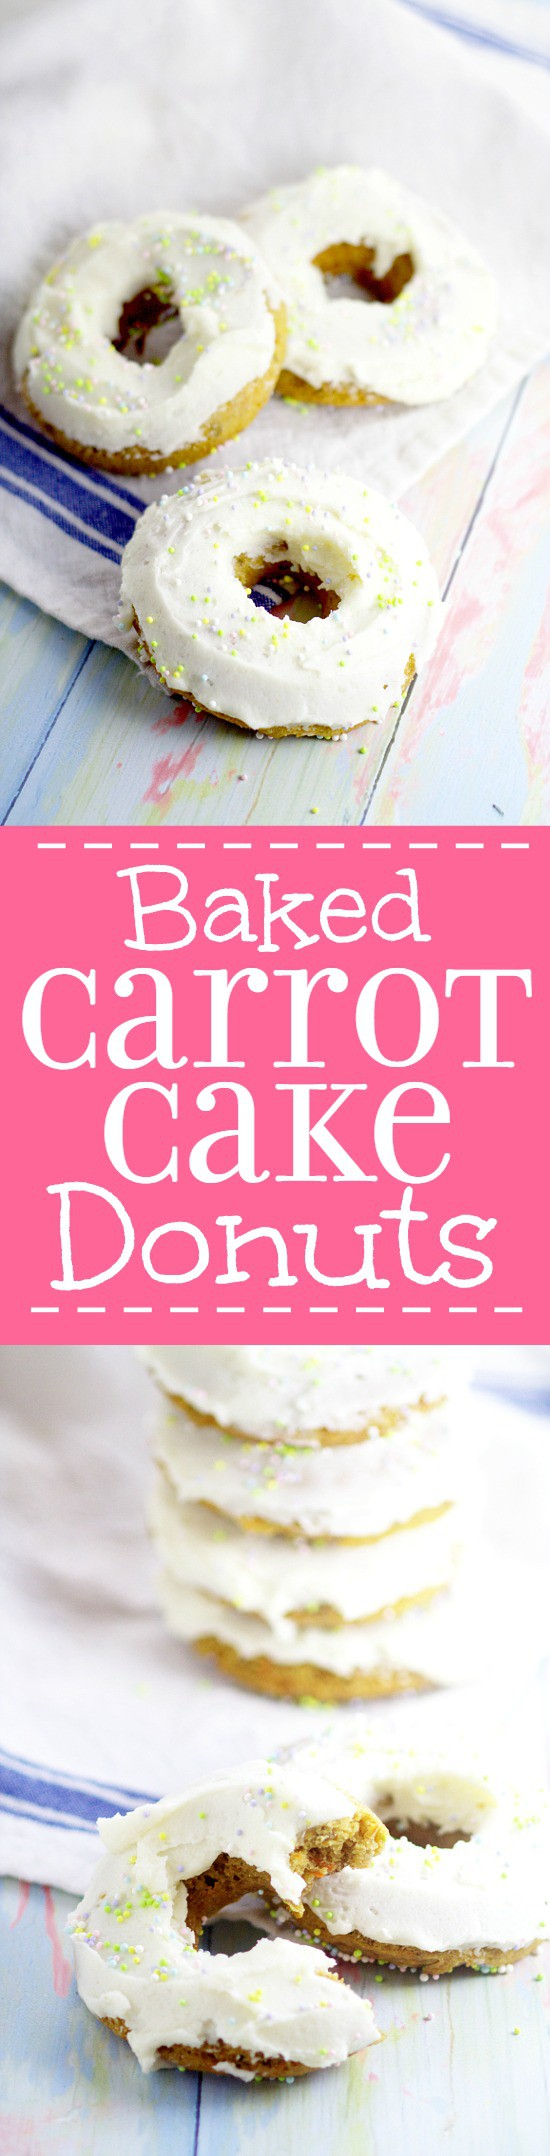 Baked Carrot Cake Donuts.Have all the flavors of your favorite dessert with these Baked Carrot Cake Donuts with cream cheese frosting for an easy and yummy Spring and Easter breakfast idea.